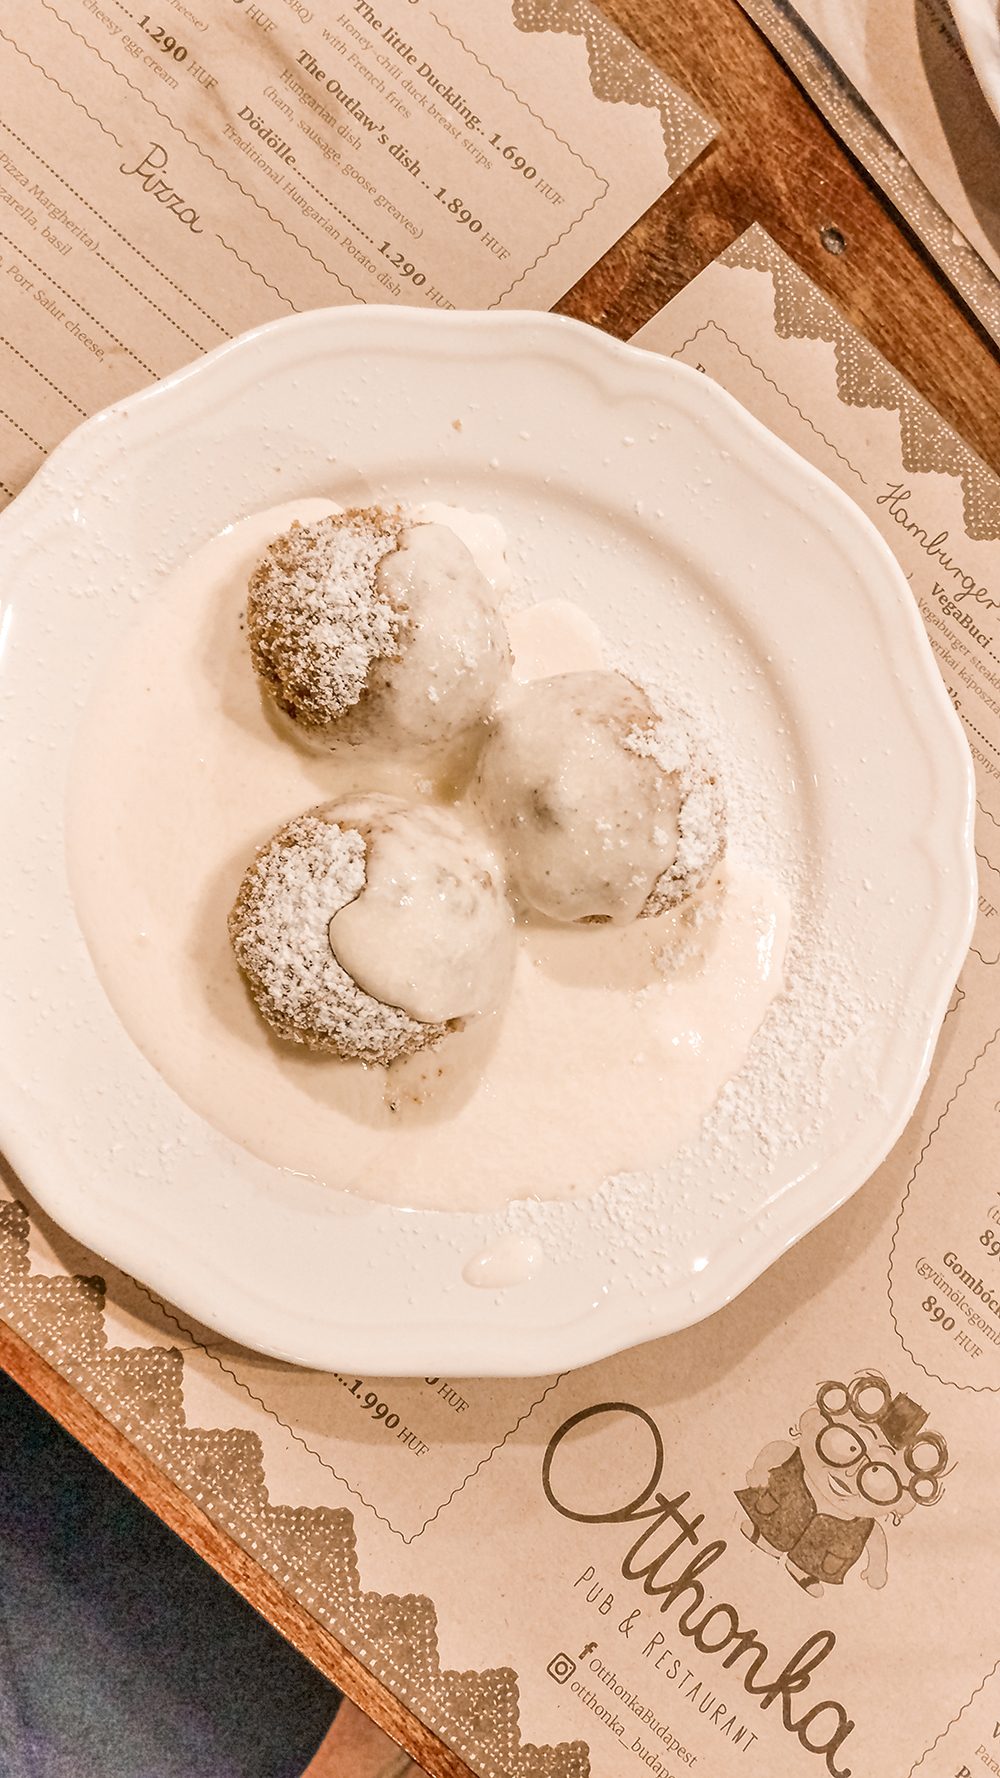 Curd cheese dumpling at Otthonka - Budapest's best Hungarian restaurants, eat like a local | Aliz's Wonderland